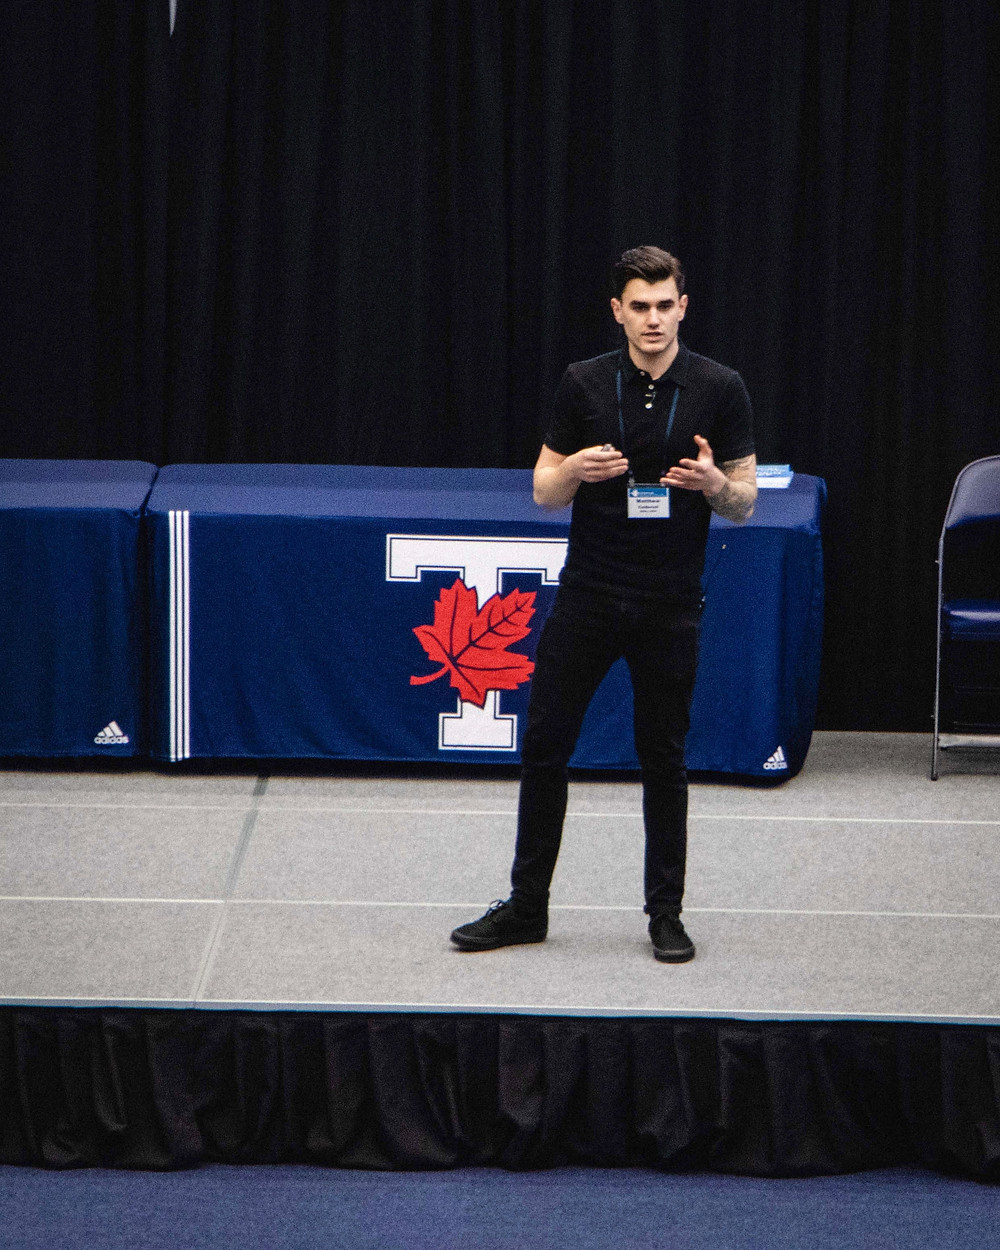 Matthew Caldaroni delivering a keynote speech at the National Strength and Conditioning Association's Toronto Conference on May 11, 2018.